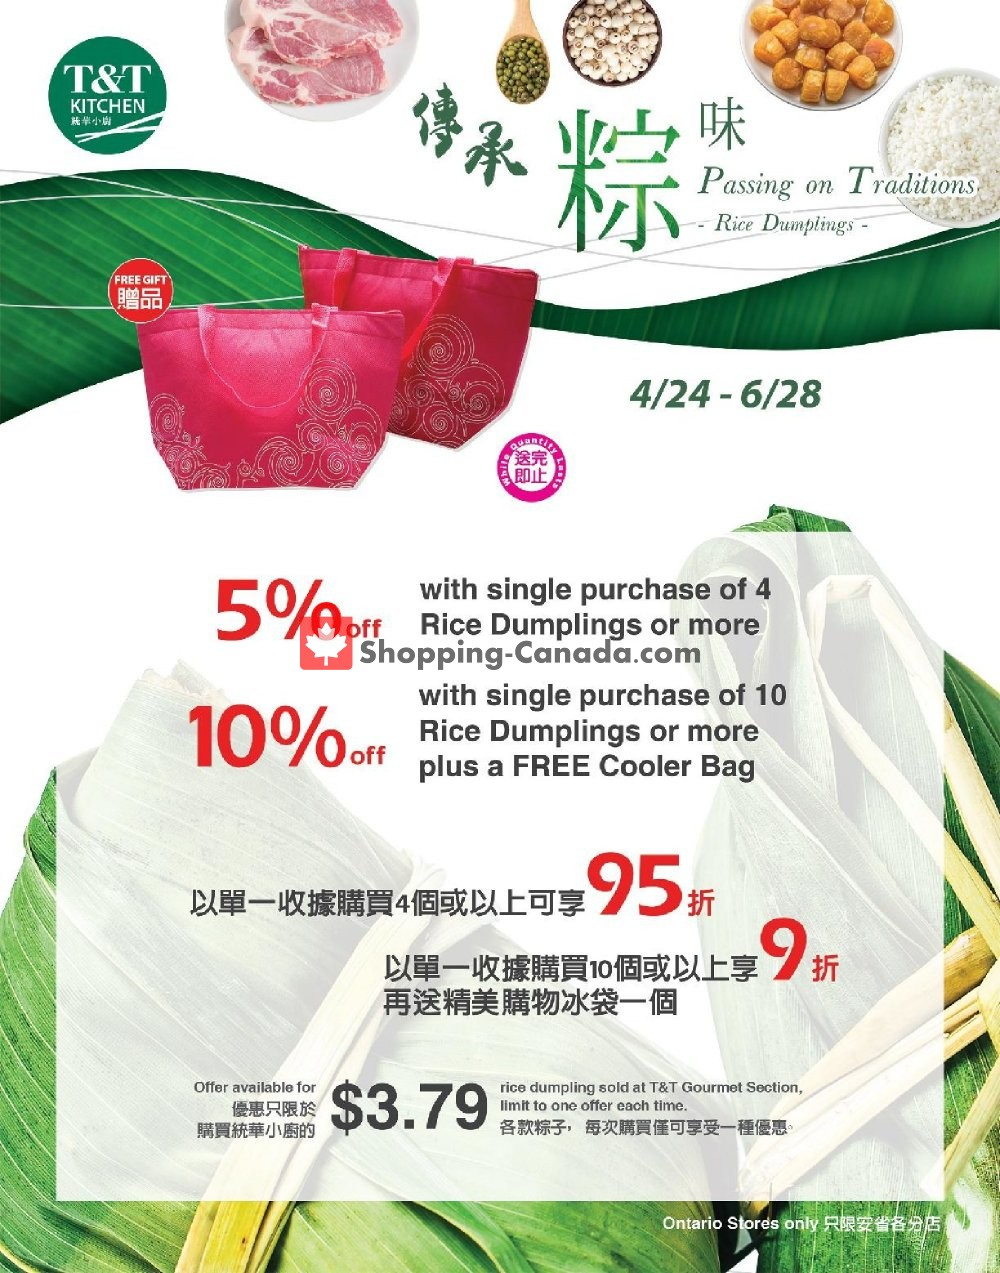 Flyer T&T Supermarket Canada - from Friday April 24, 2020 to Sunday June 28, 2020